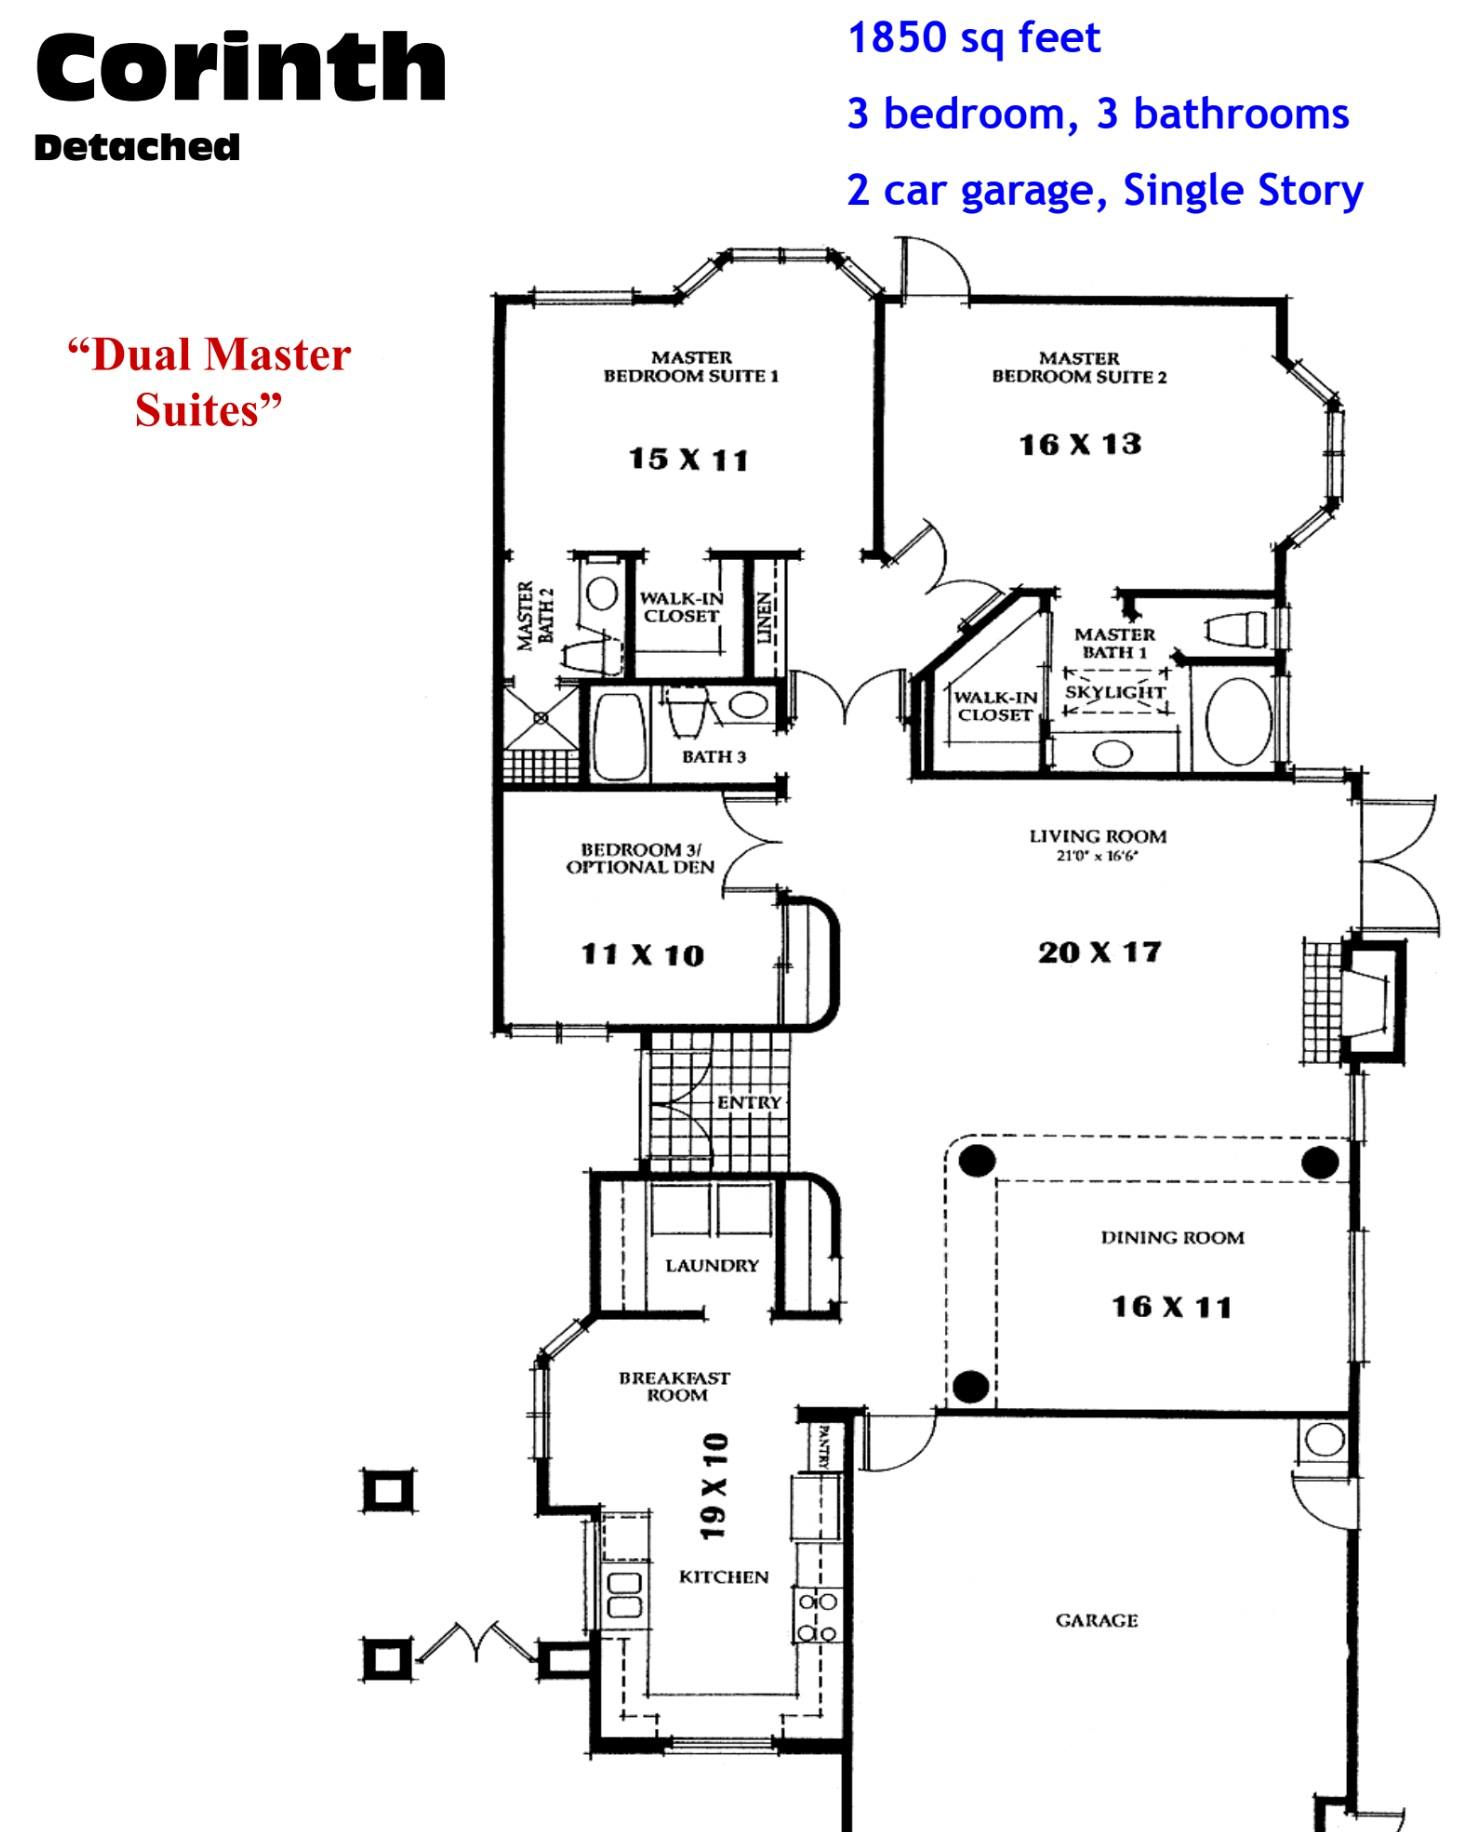 Ocean Hills Country Club Corinth Floor Plans Ocean Hills Model Homes